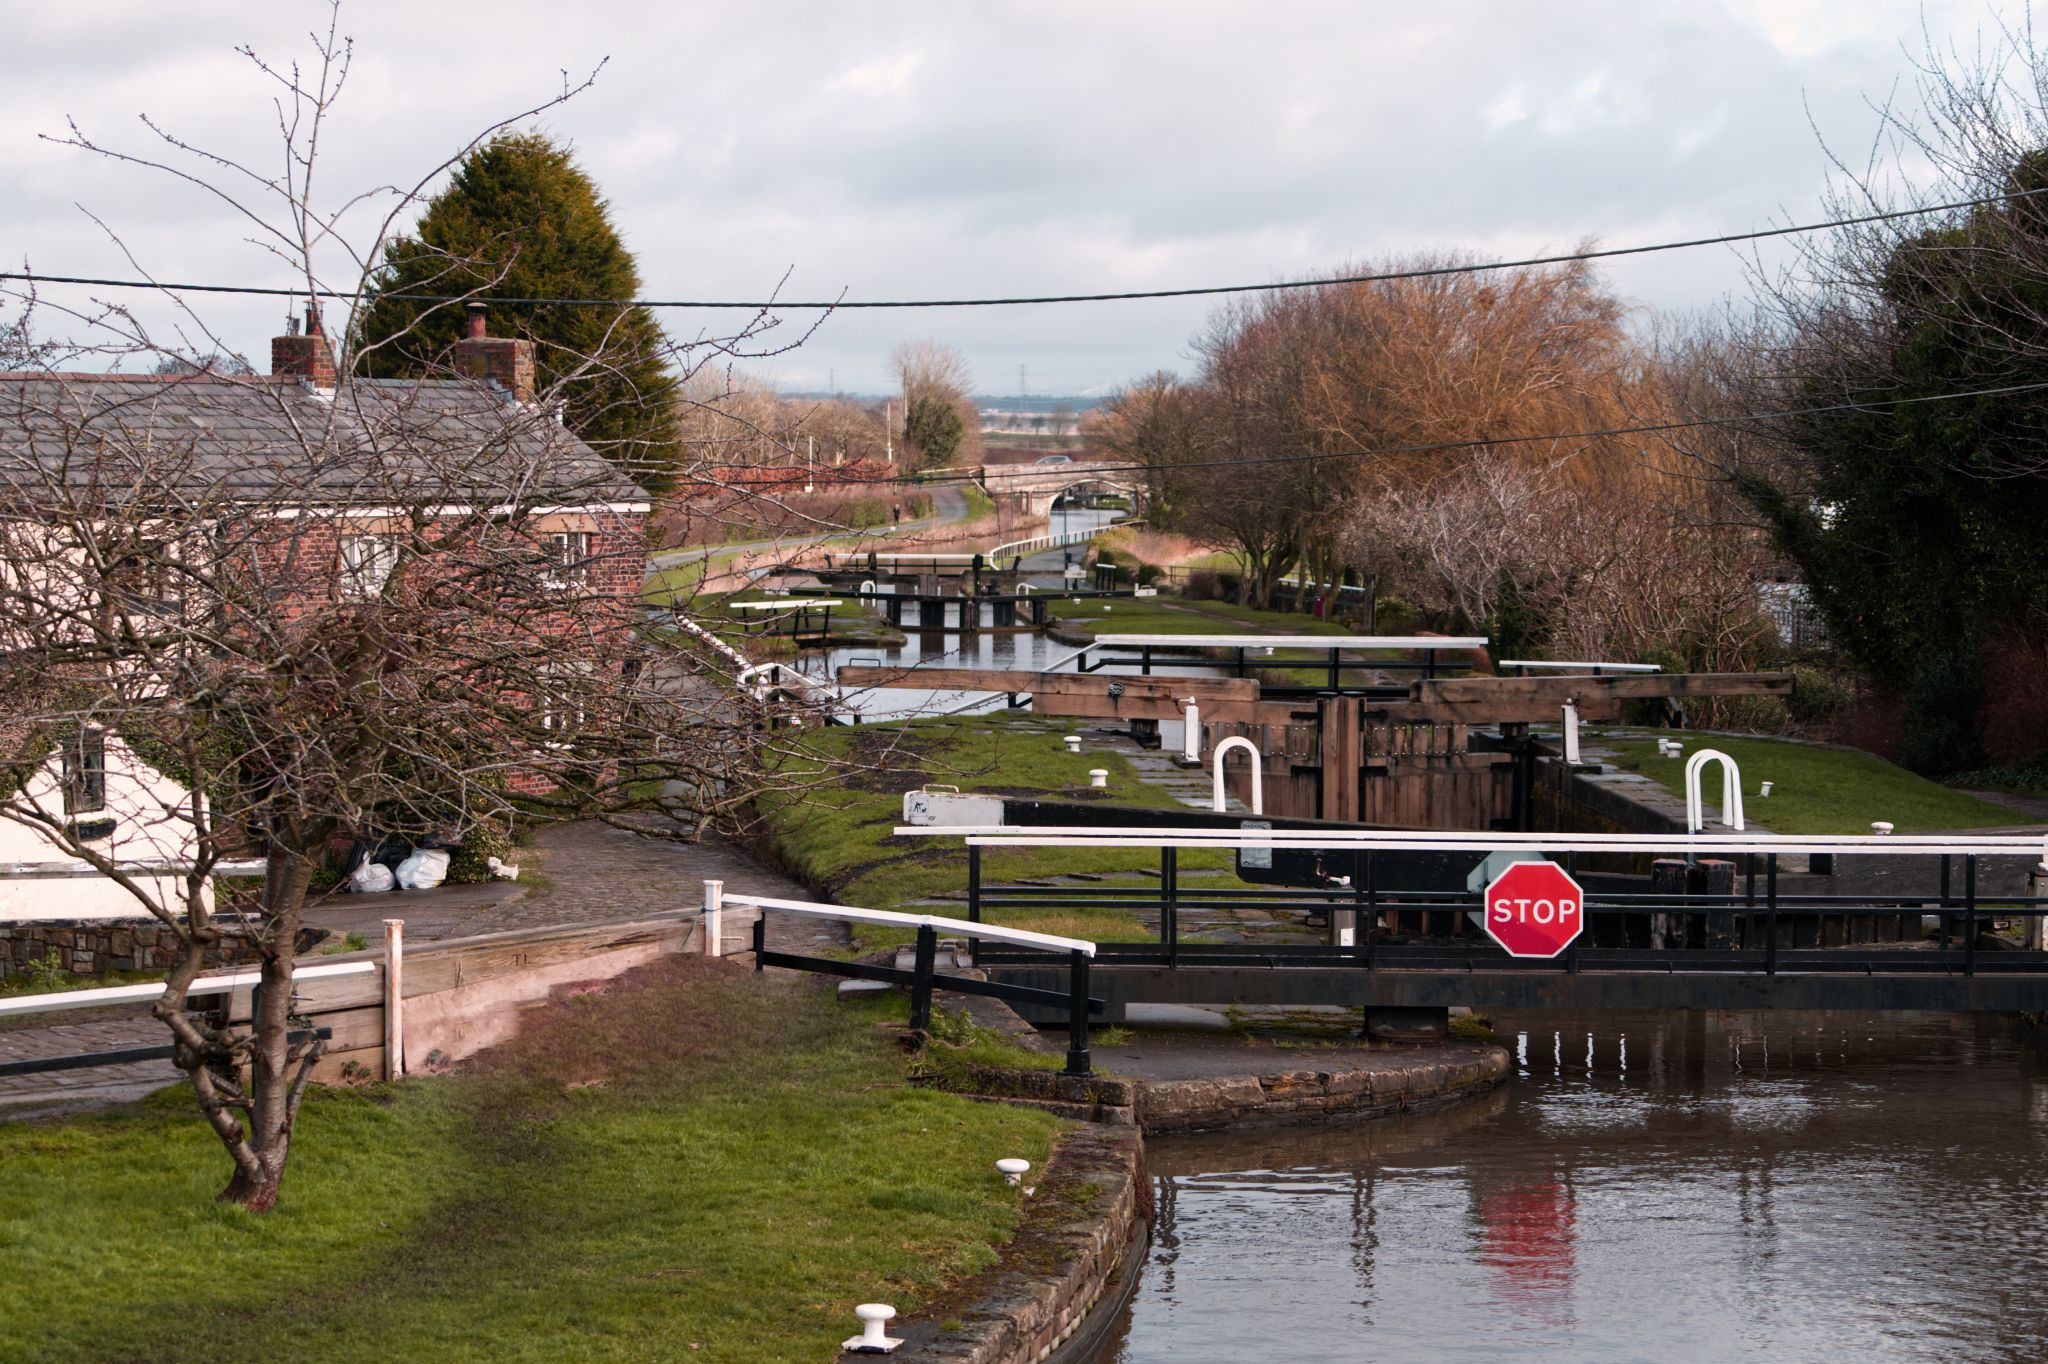 Rufford Locks, United Kingdom